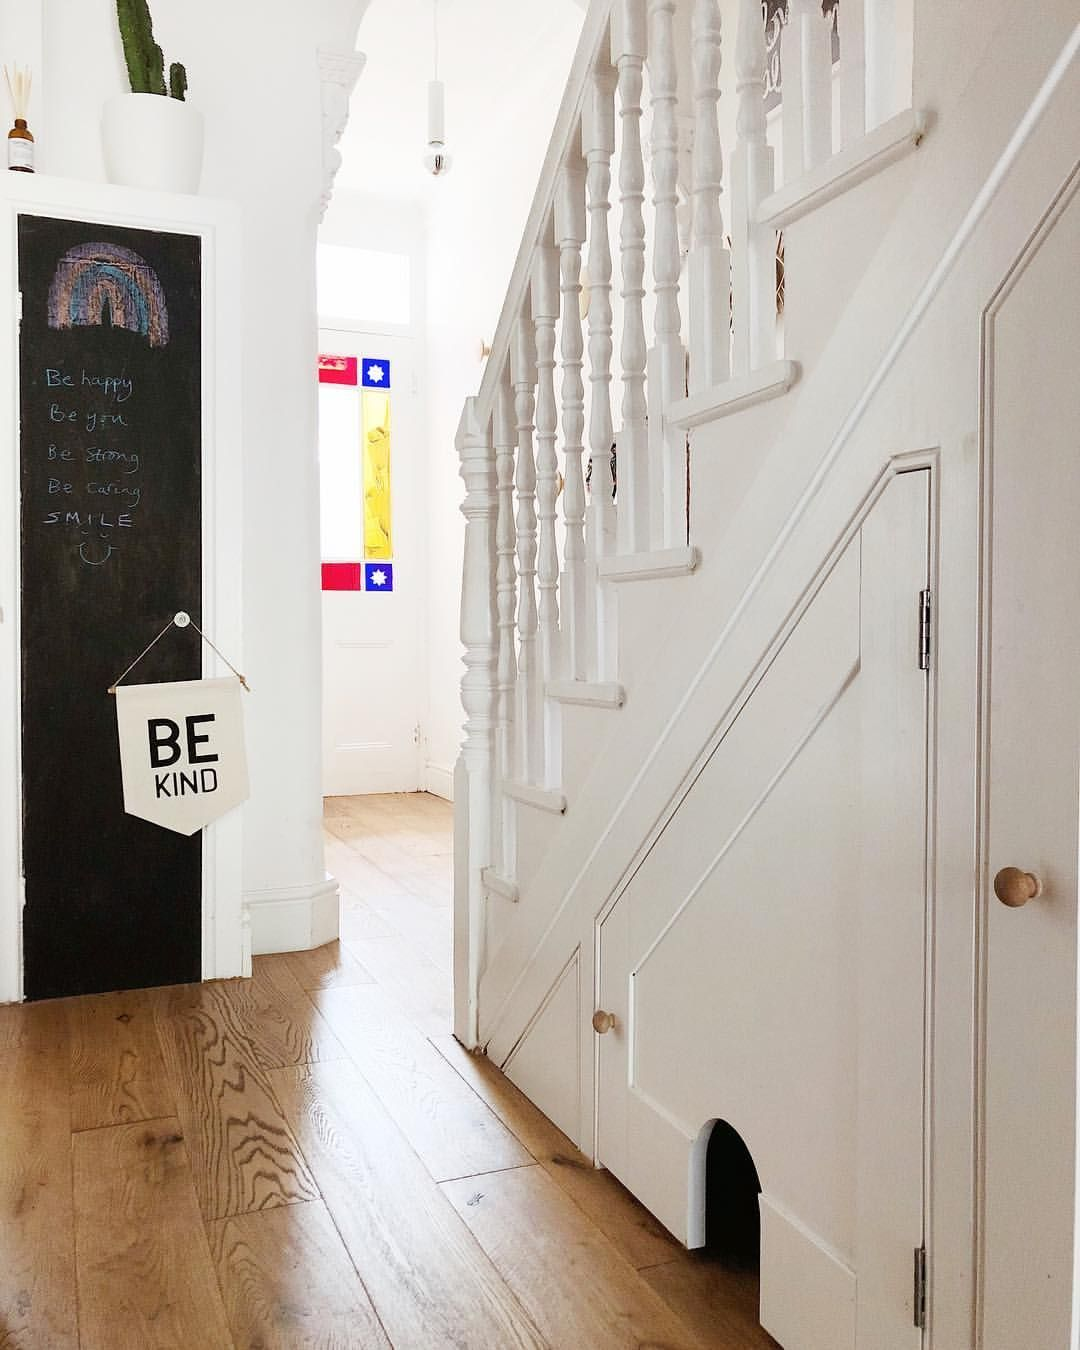 Bespoke Under Stairs Shelving: Where To Hide The Cat Litter Tray? Under The Stairs With A